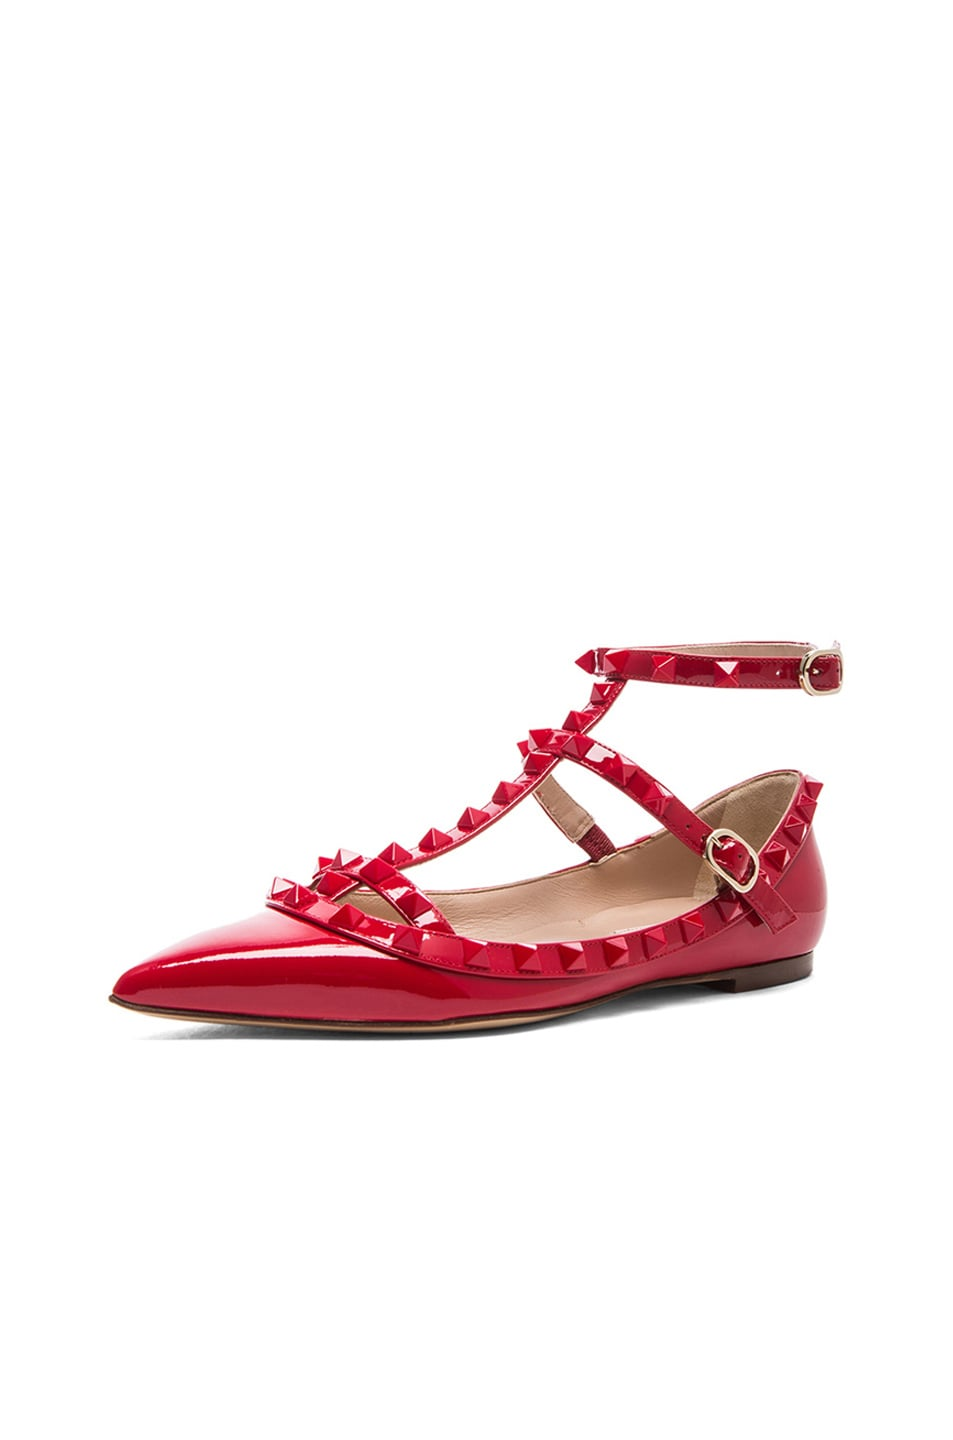 Image 2 of Valentino Rockstud Punkouture Patent Cage Flats in Red